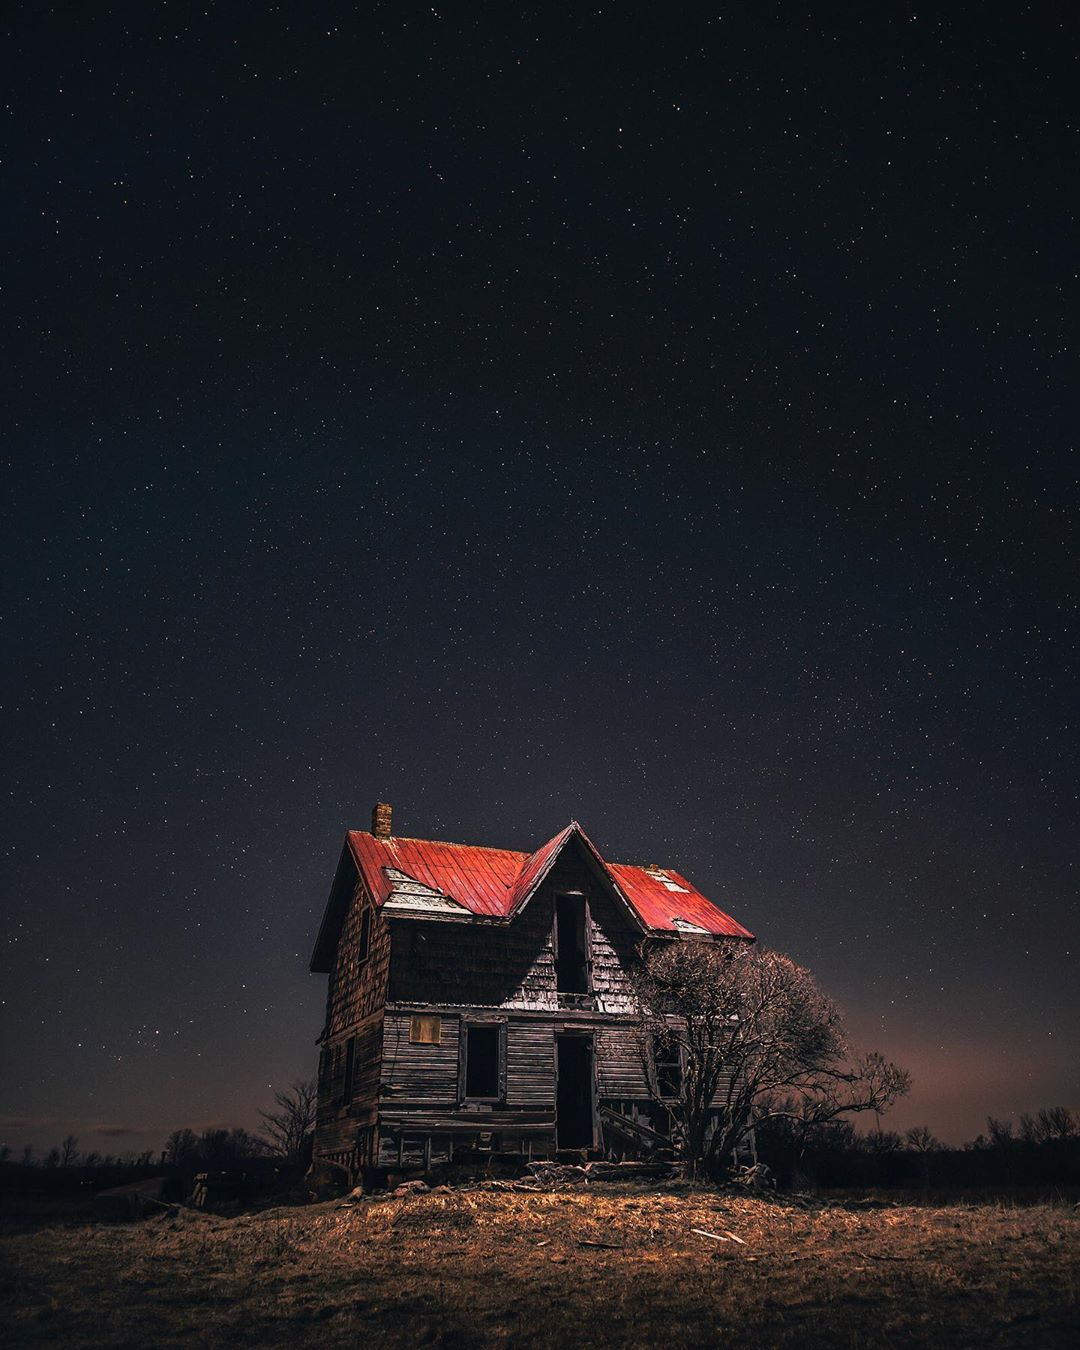 abandoned house under night sky in a field